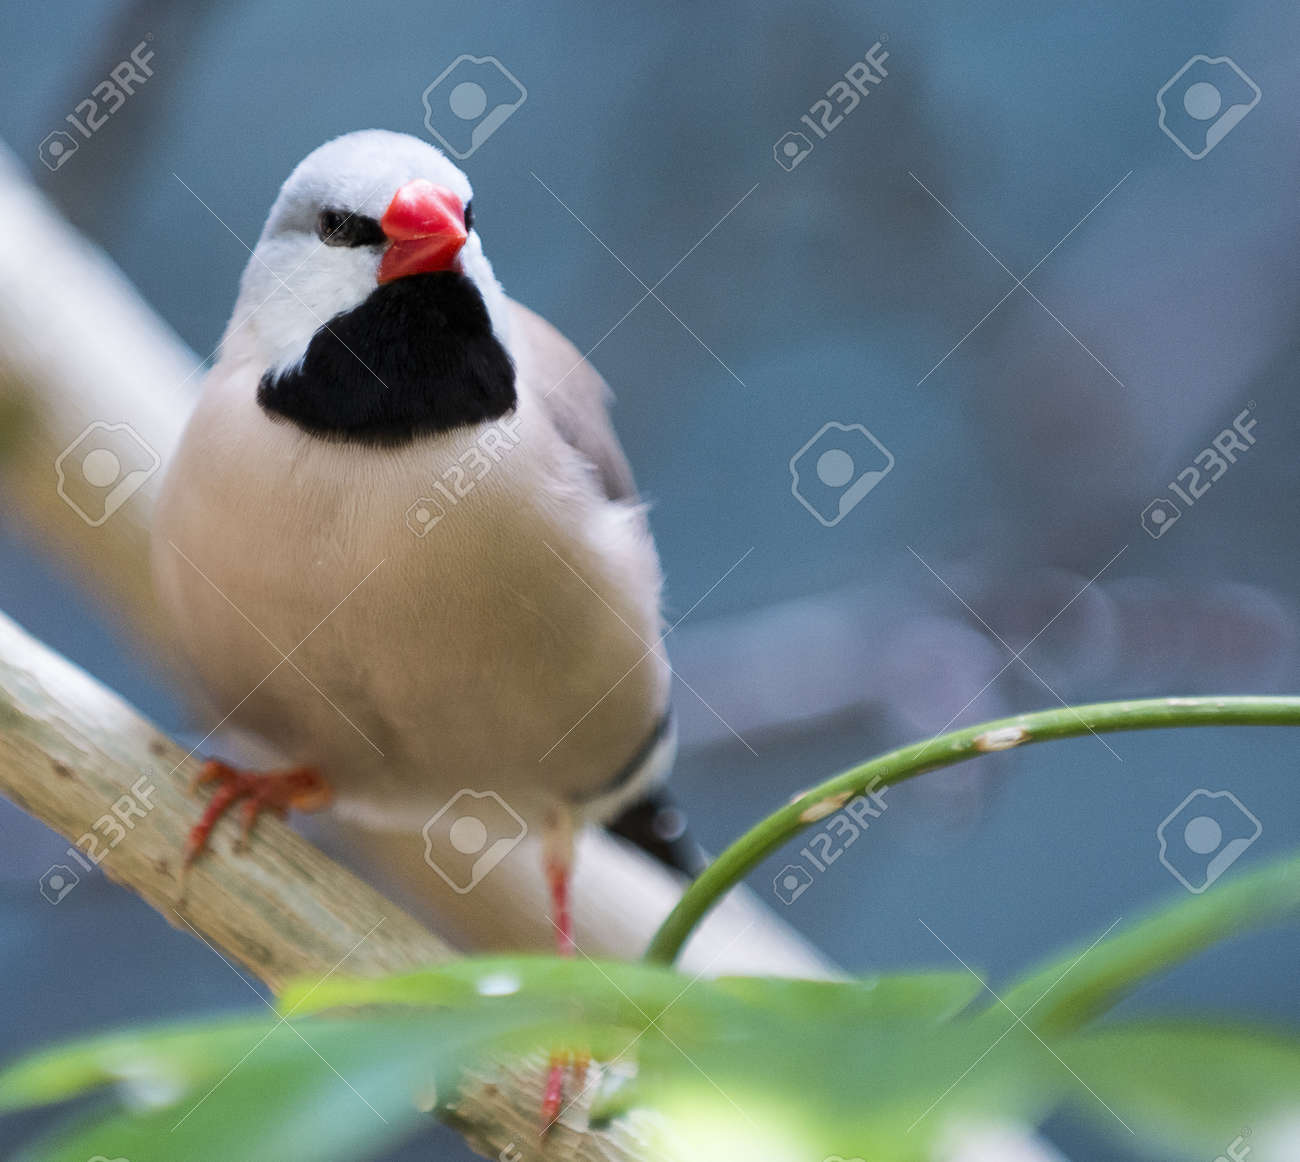 Closeup photo of a beautiful Shaft-Tail Finch bird with a black chest and orange feet and beak Stock Photo - 21024119